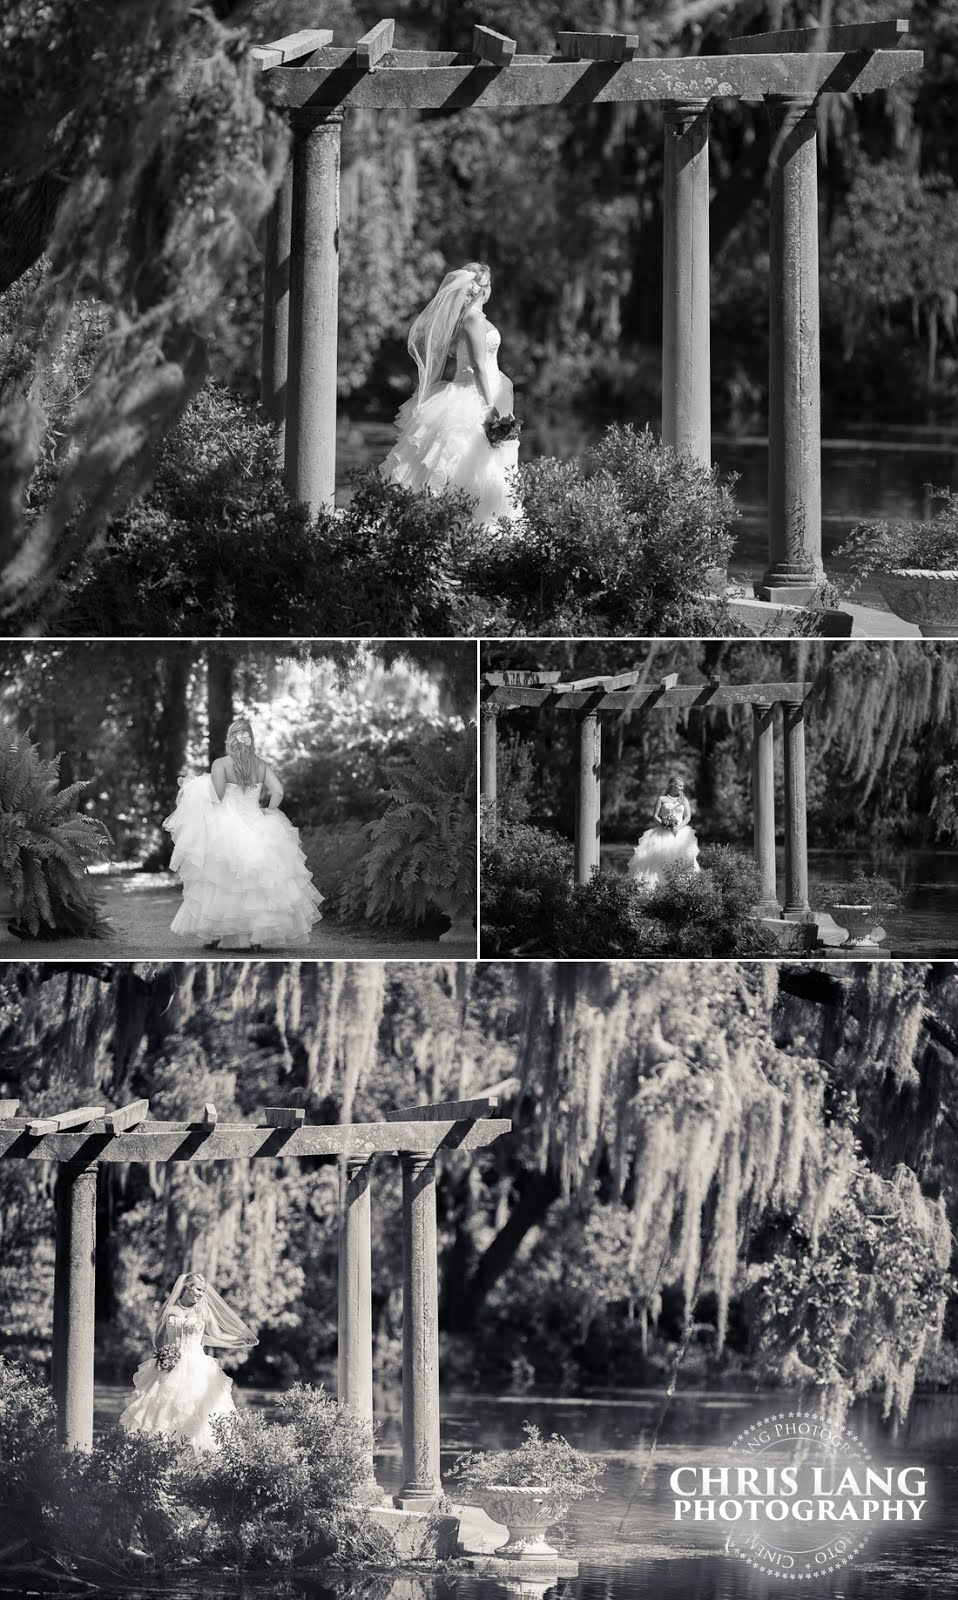 Airlie Gardens bridal picture - Black & White Bridal Photography - Bridal Ideas - Wedding dress - Garden Weddings - Outdoor wedding venue - Chris Lang Photography - Wilmington NC Wedding Photographer